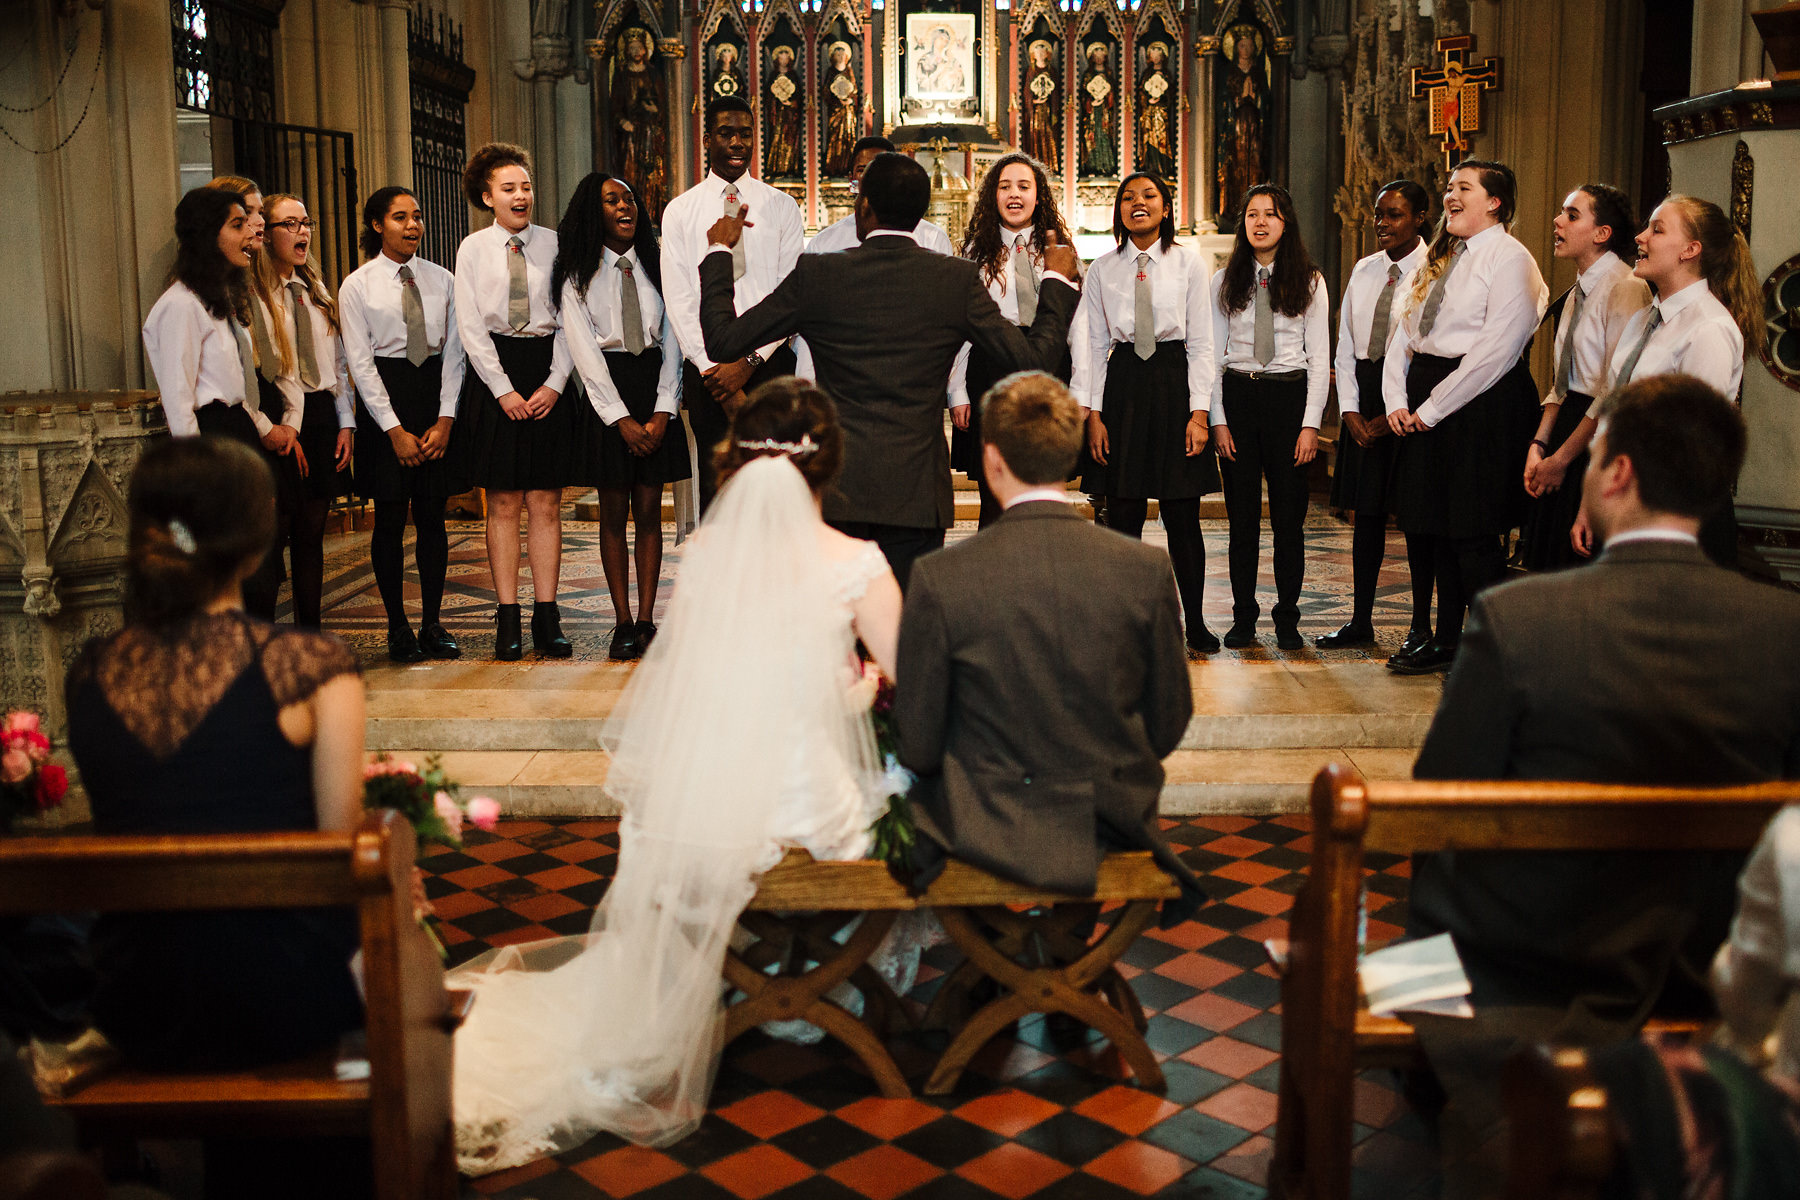 Clapham Common church wedding choir